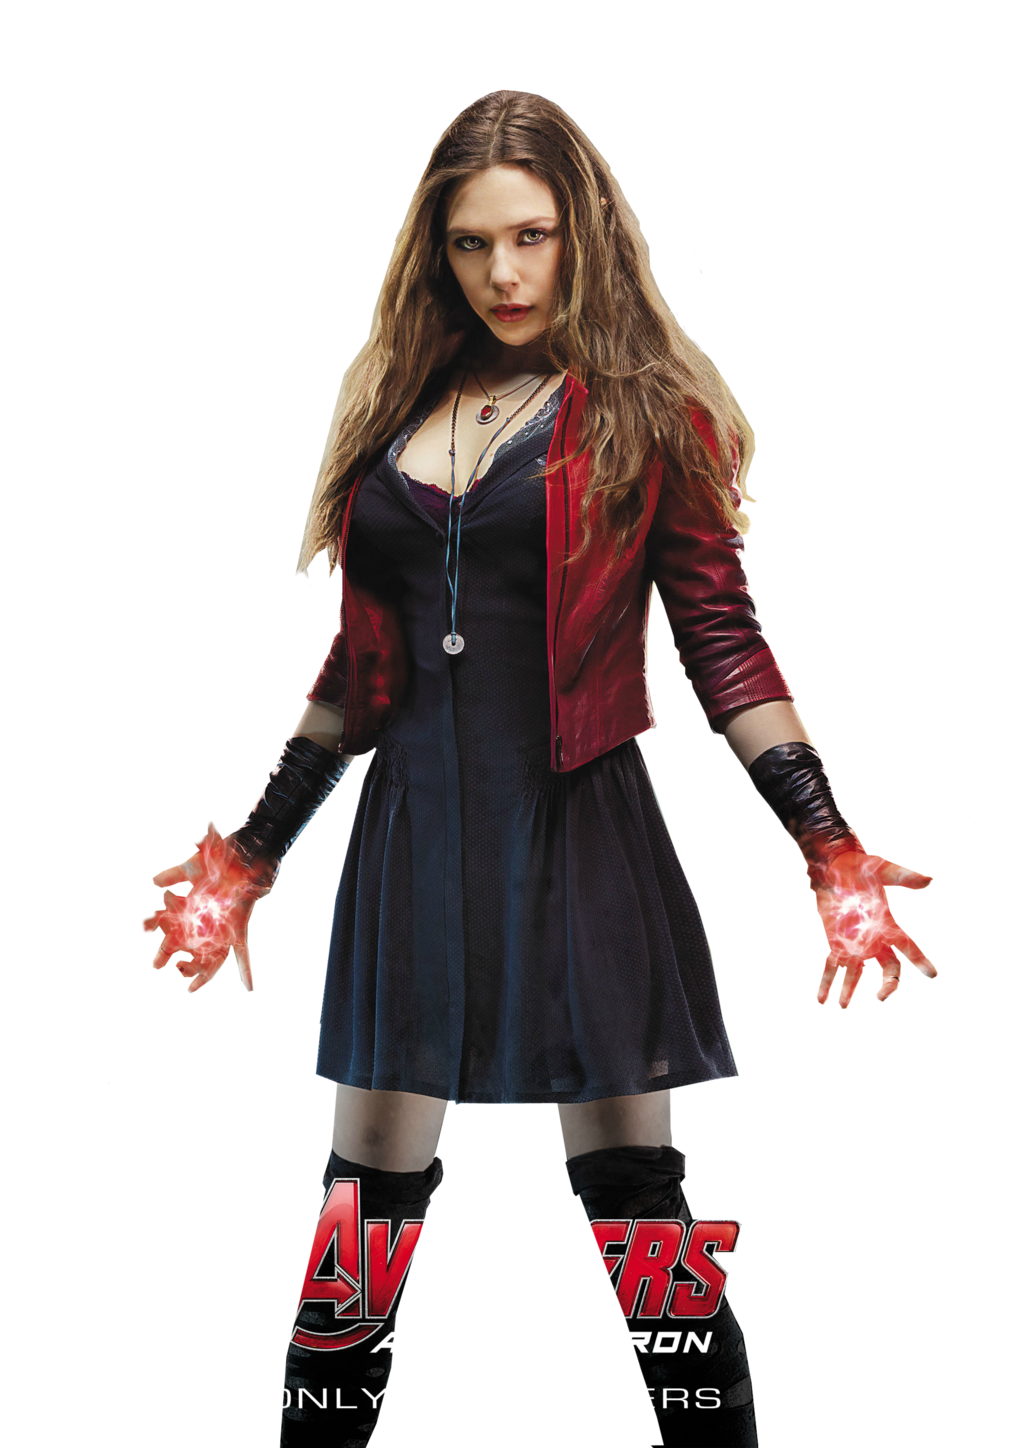 Download PNG image - Scarlet Witch High-Quality Png - Scarletwitch HD PNG